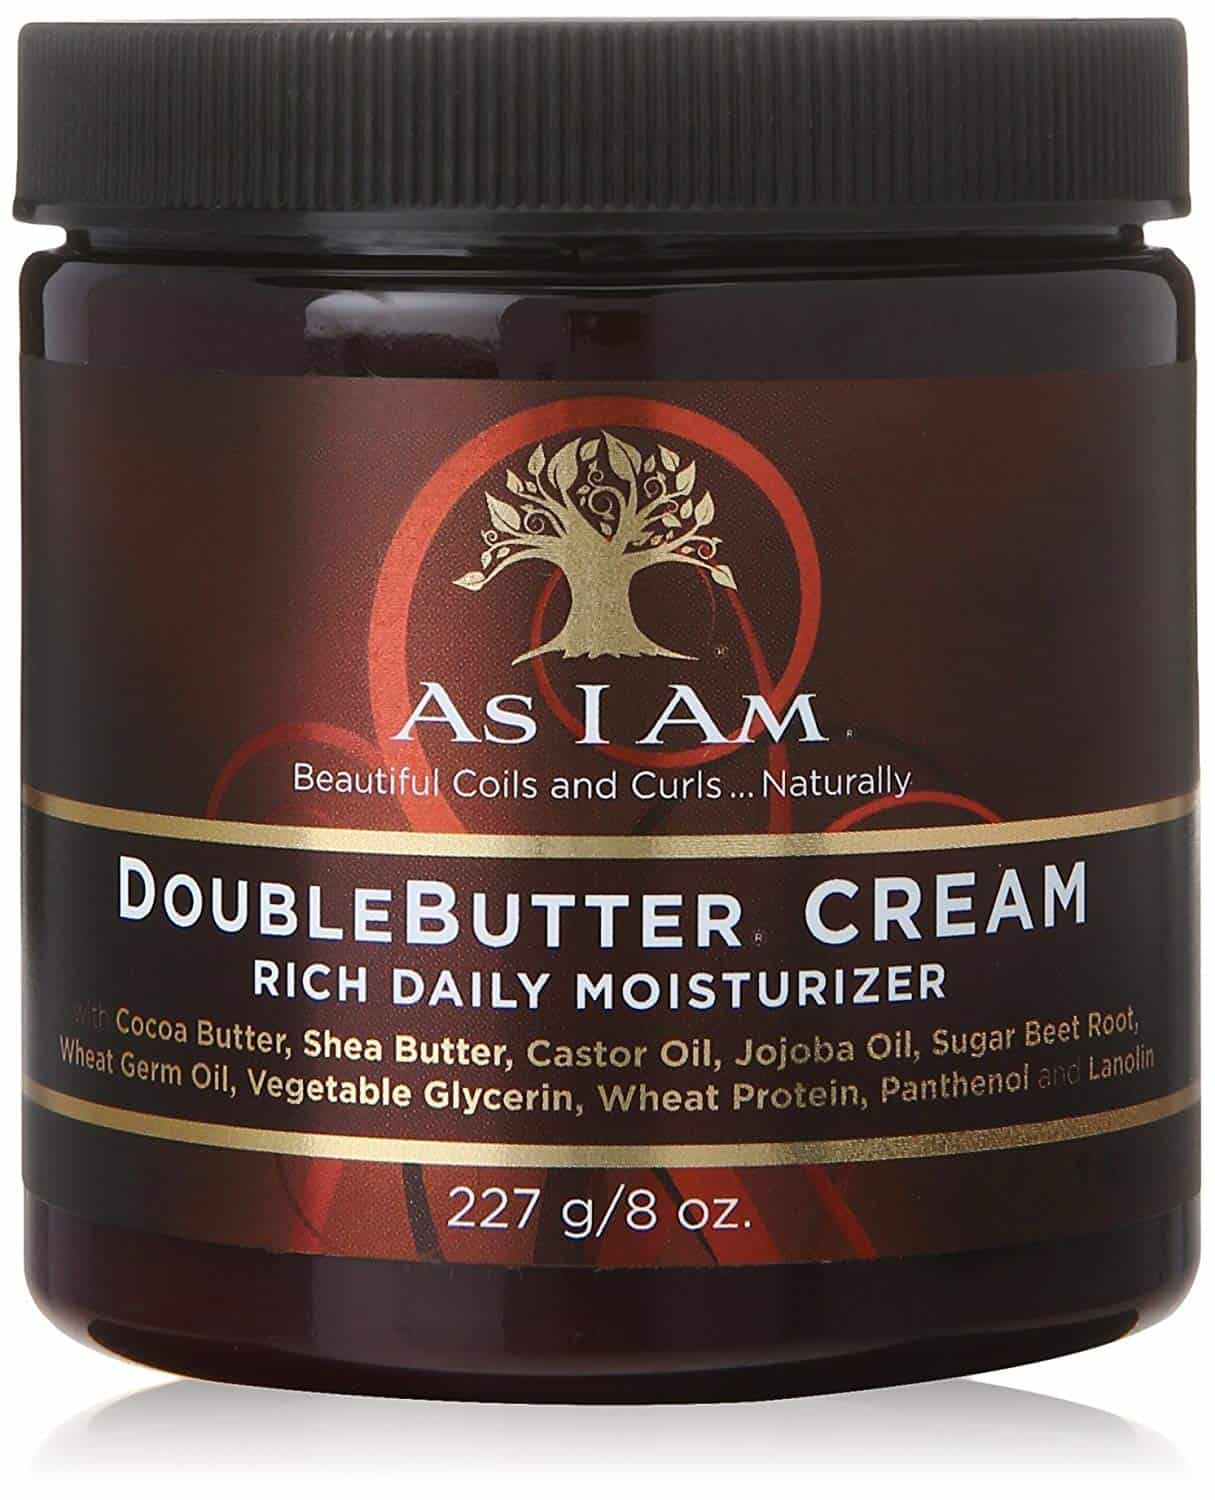 As I Am Double Butter Cream Review for Waves